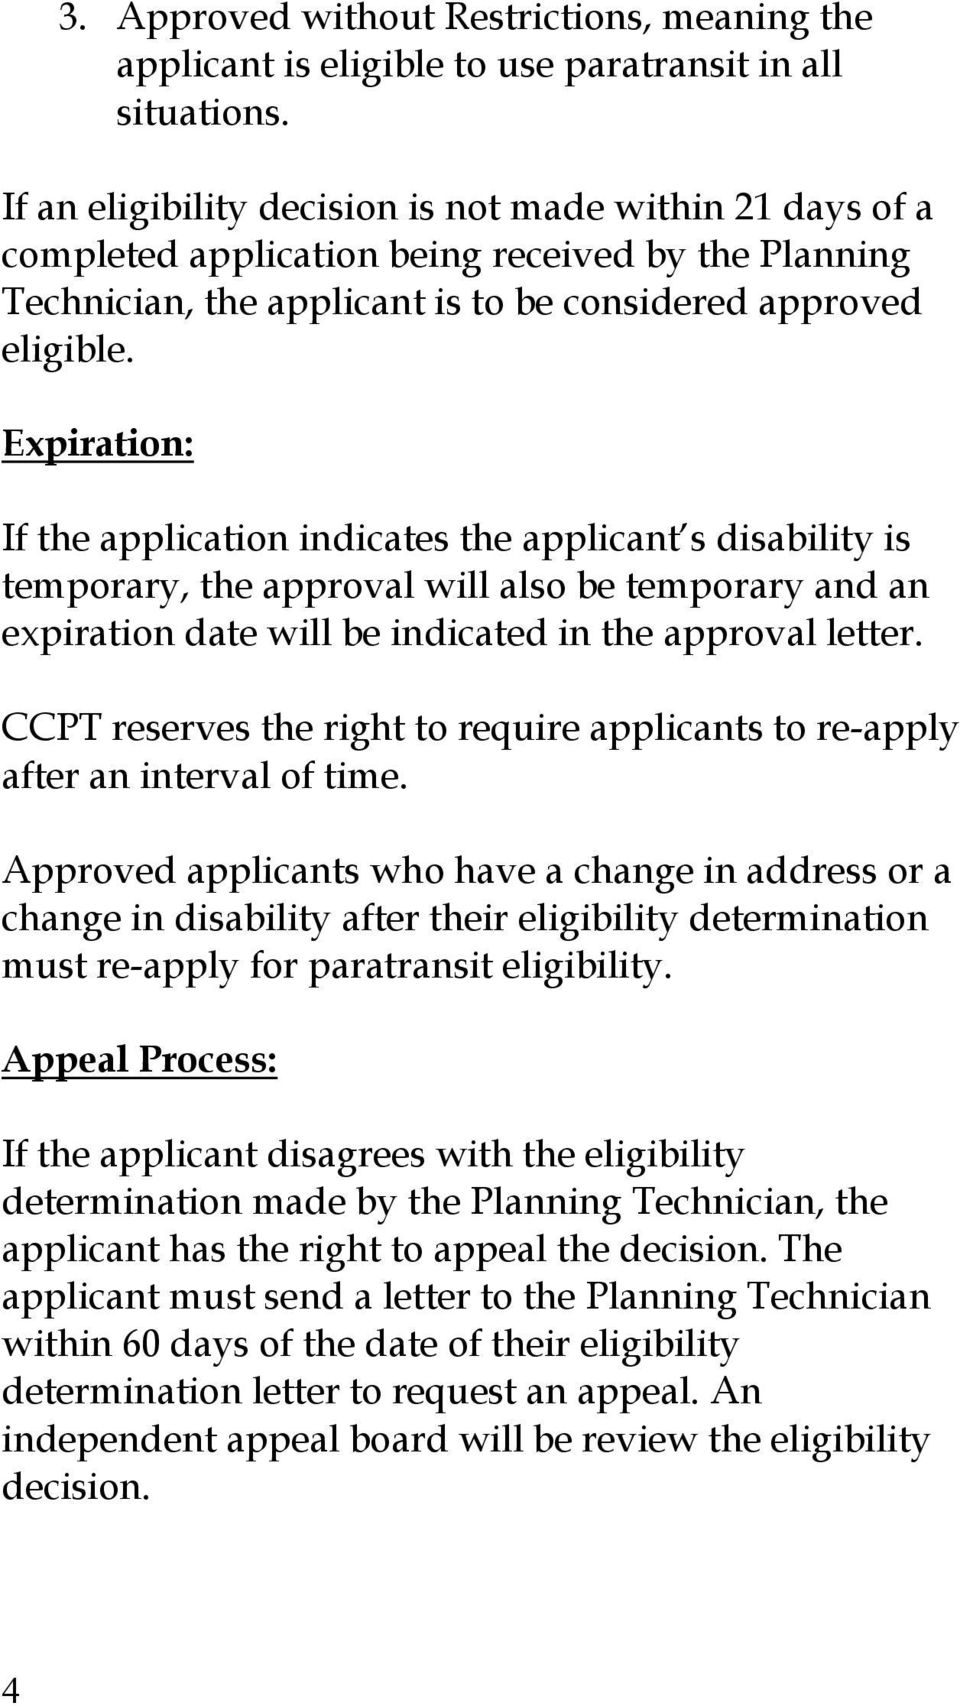 Expiration: If the application indicates the applicant s disability is temporary, the approval will also be temporary and an expiration date will be indicated in the approval letter.